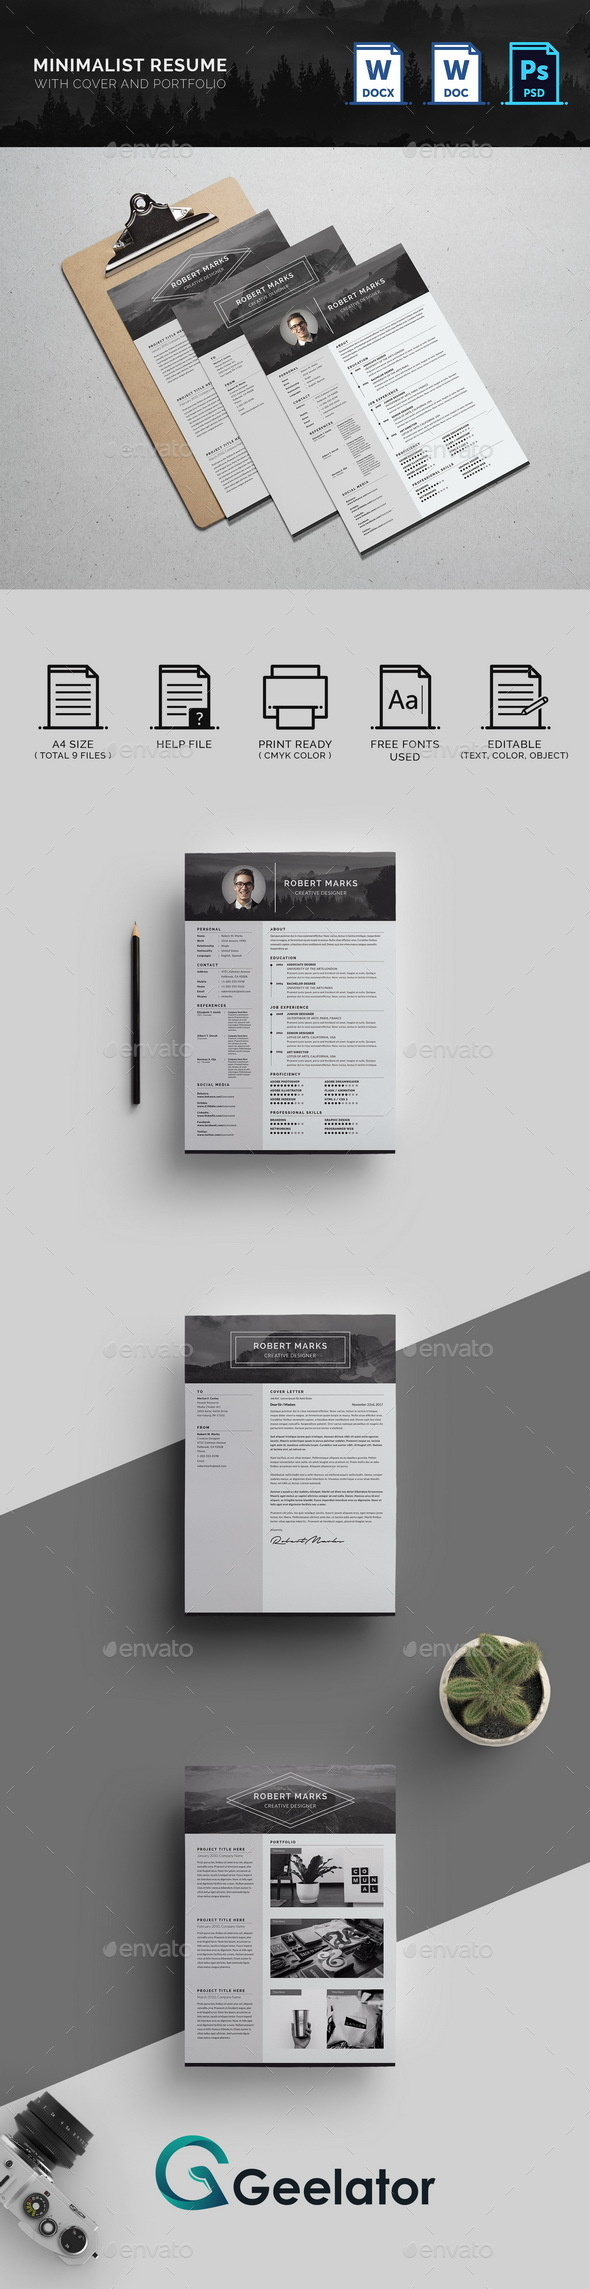 Sample Bookkeeper Resume Minimalist Resume By Geelator  Graphicriver Examples Of It Resumes Word with How To Write A Summary For Resume Pdf Minimalist Resume  Resumes Stationery Best Resume Examples Pdf